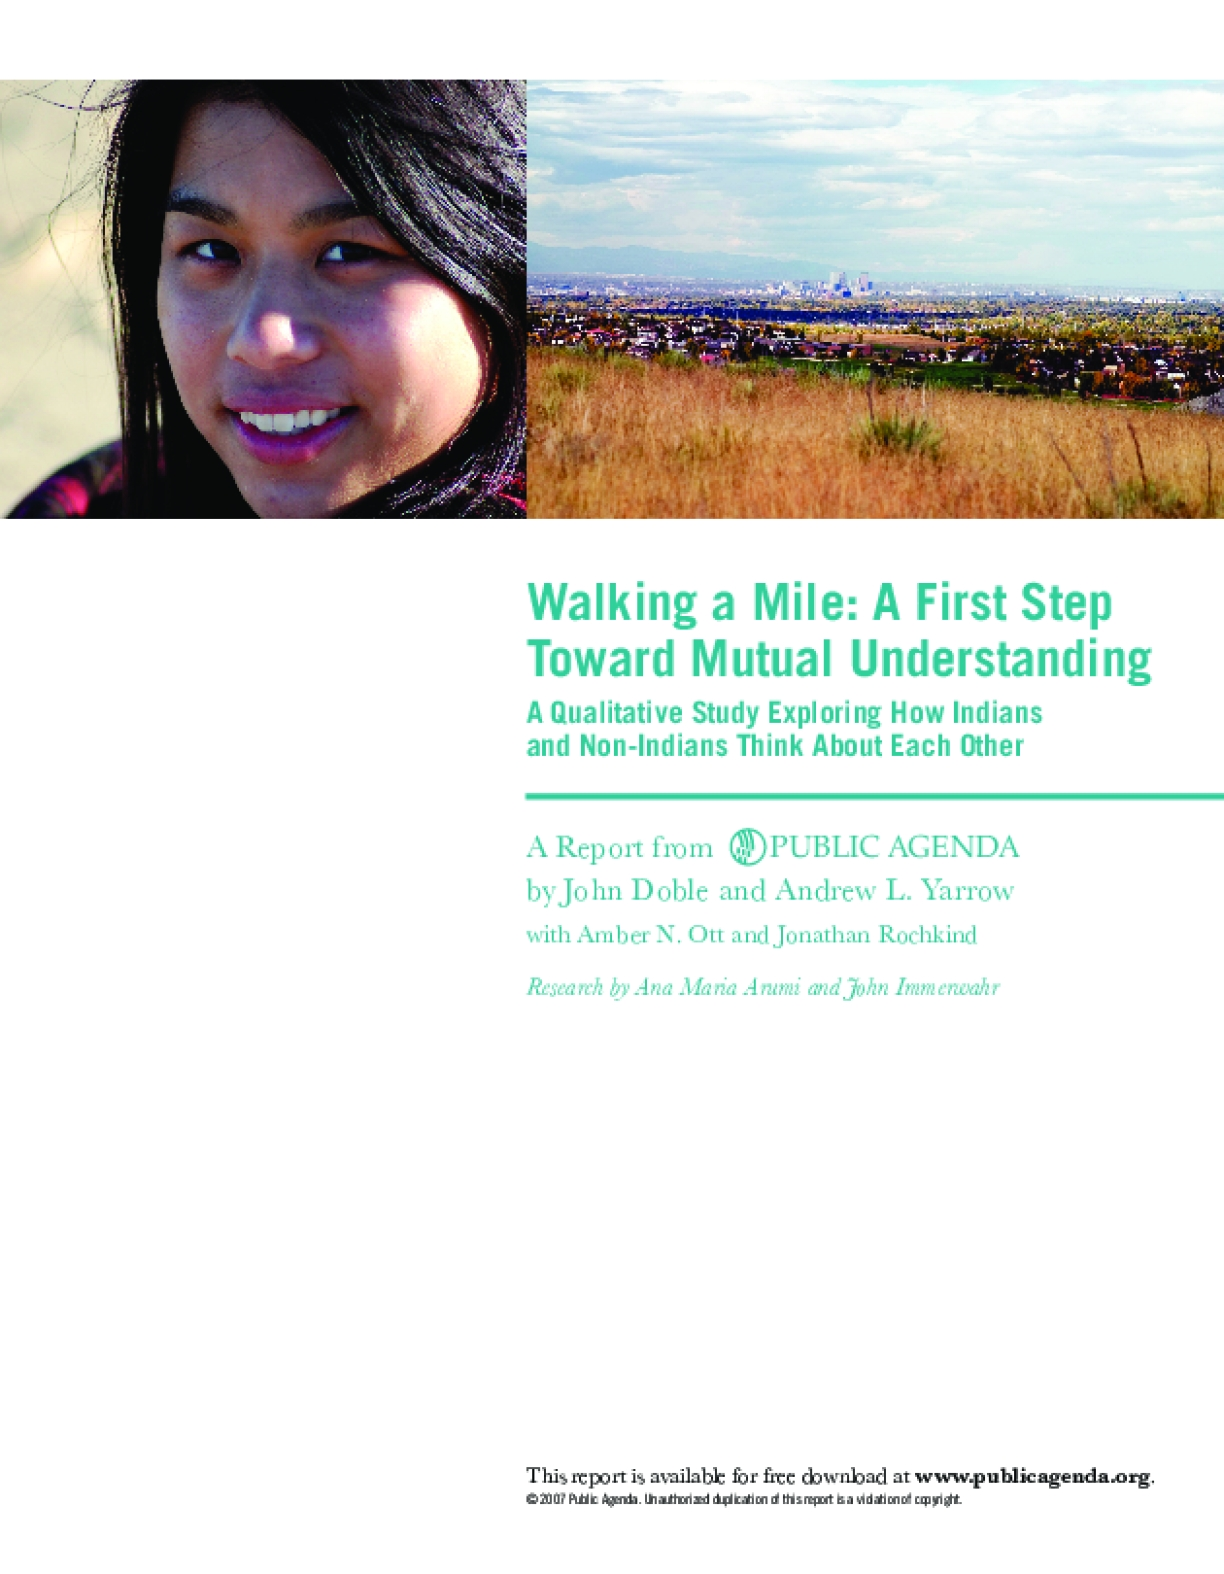 Walking a Mile: A First Step Toward Mutual Understanding - A Qualitative Study Exploring How Indians and Non-Indians Think About Each Other